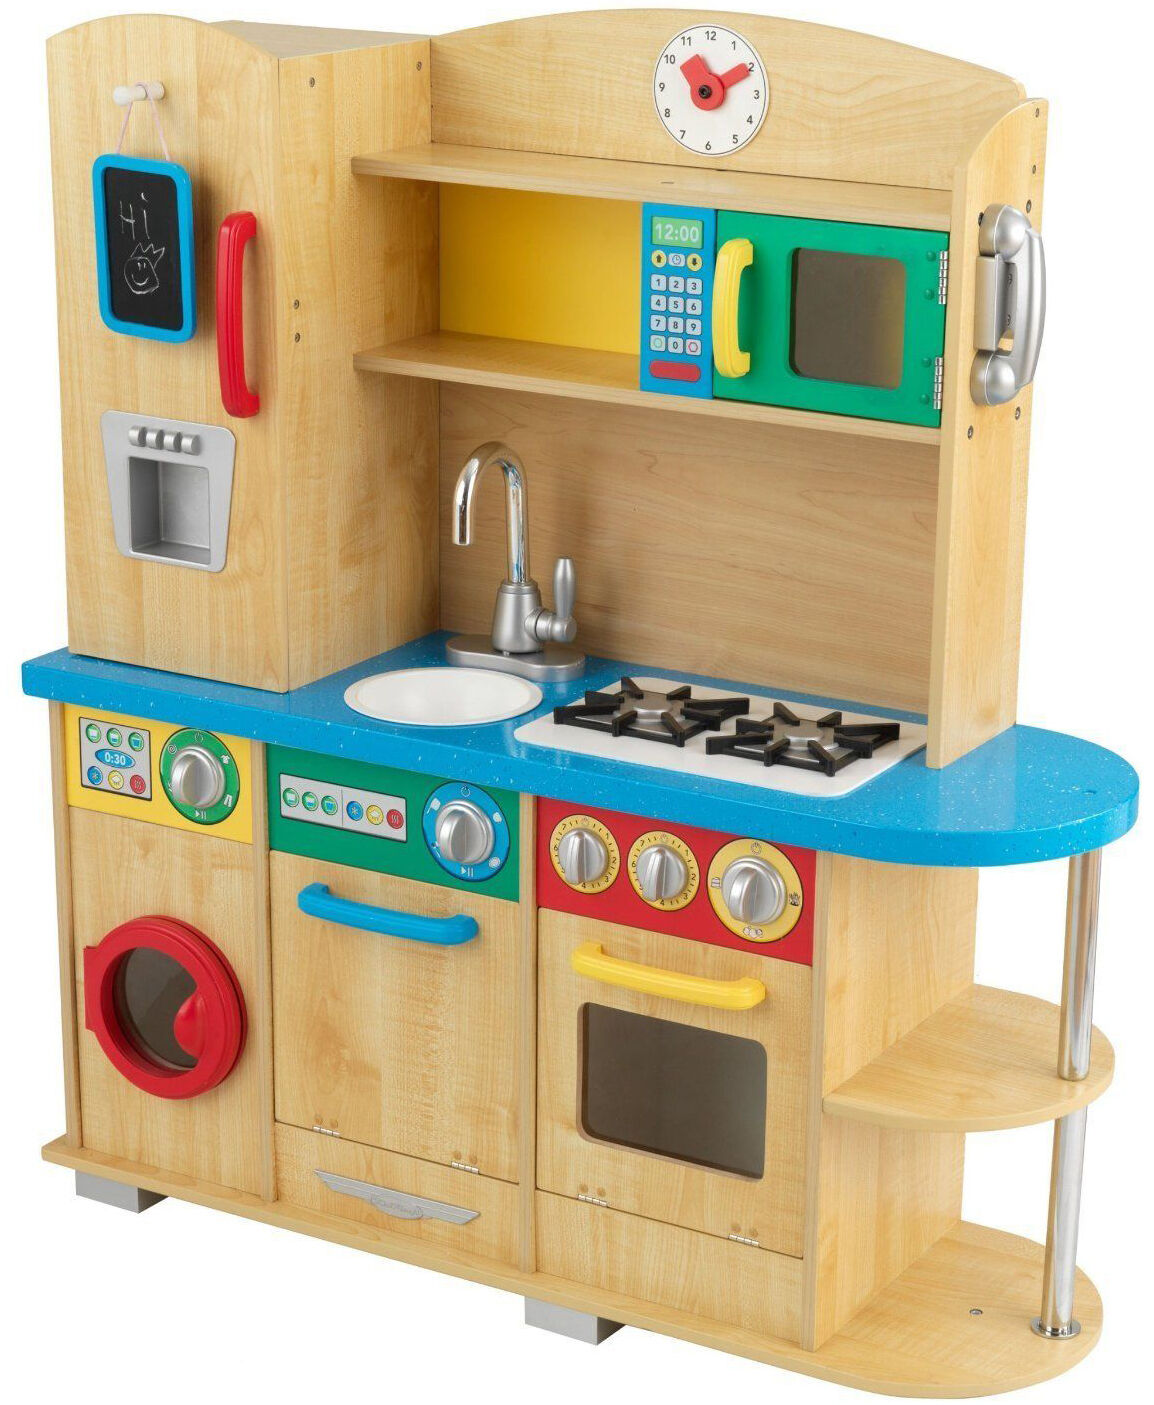 Best Pretend Play Toys For Kids : Top wooden kitchens for kids ebay